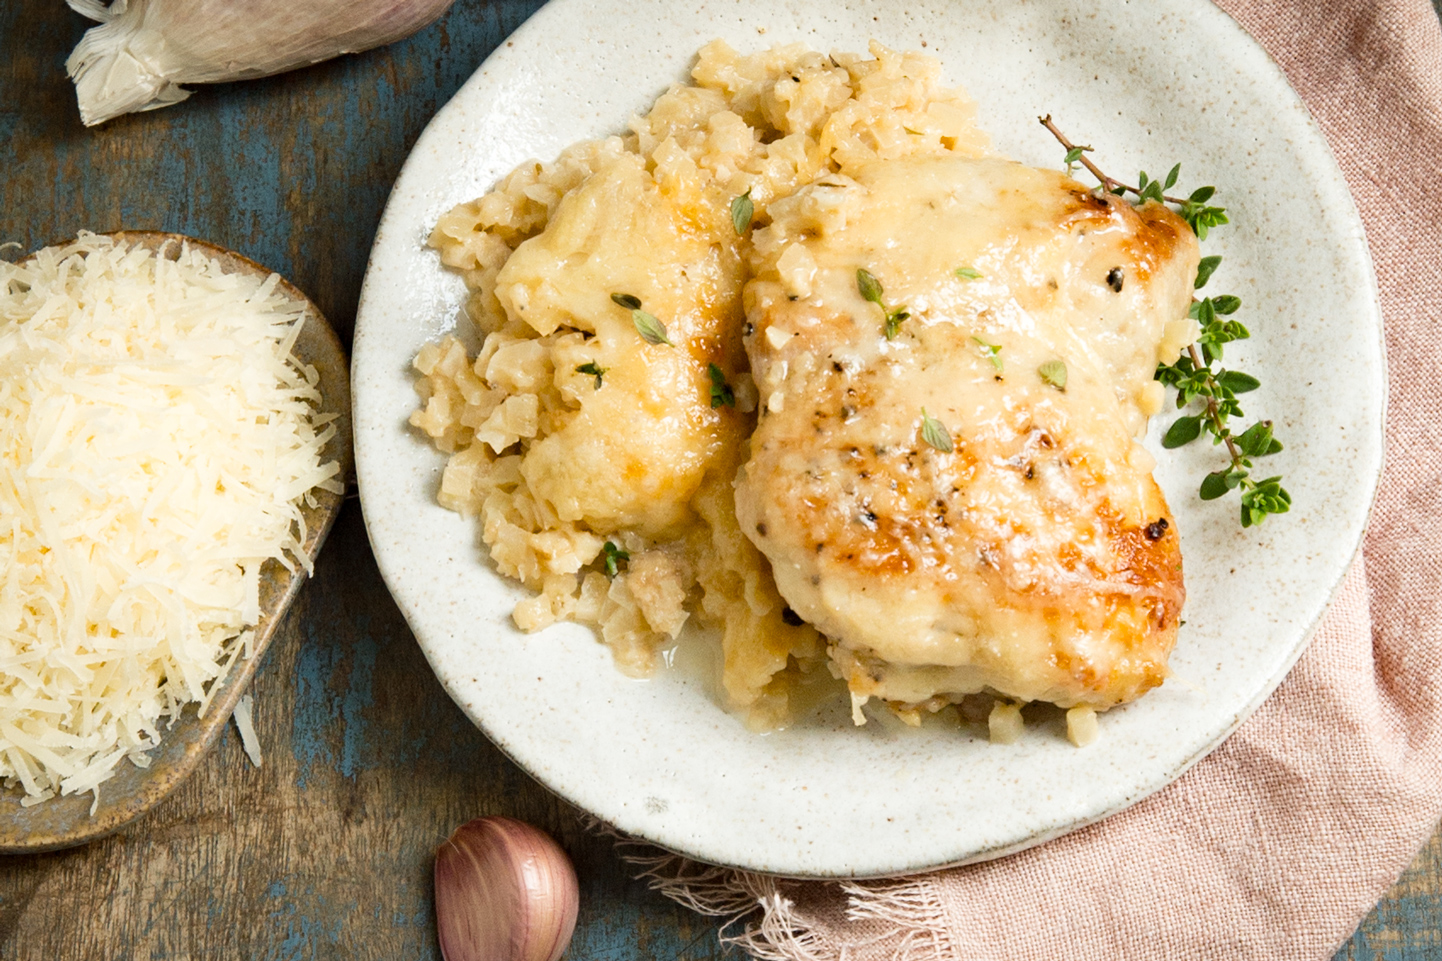 Easy One Skillet Garlic Parmesan Chicken (Keto-Friendly)